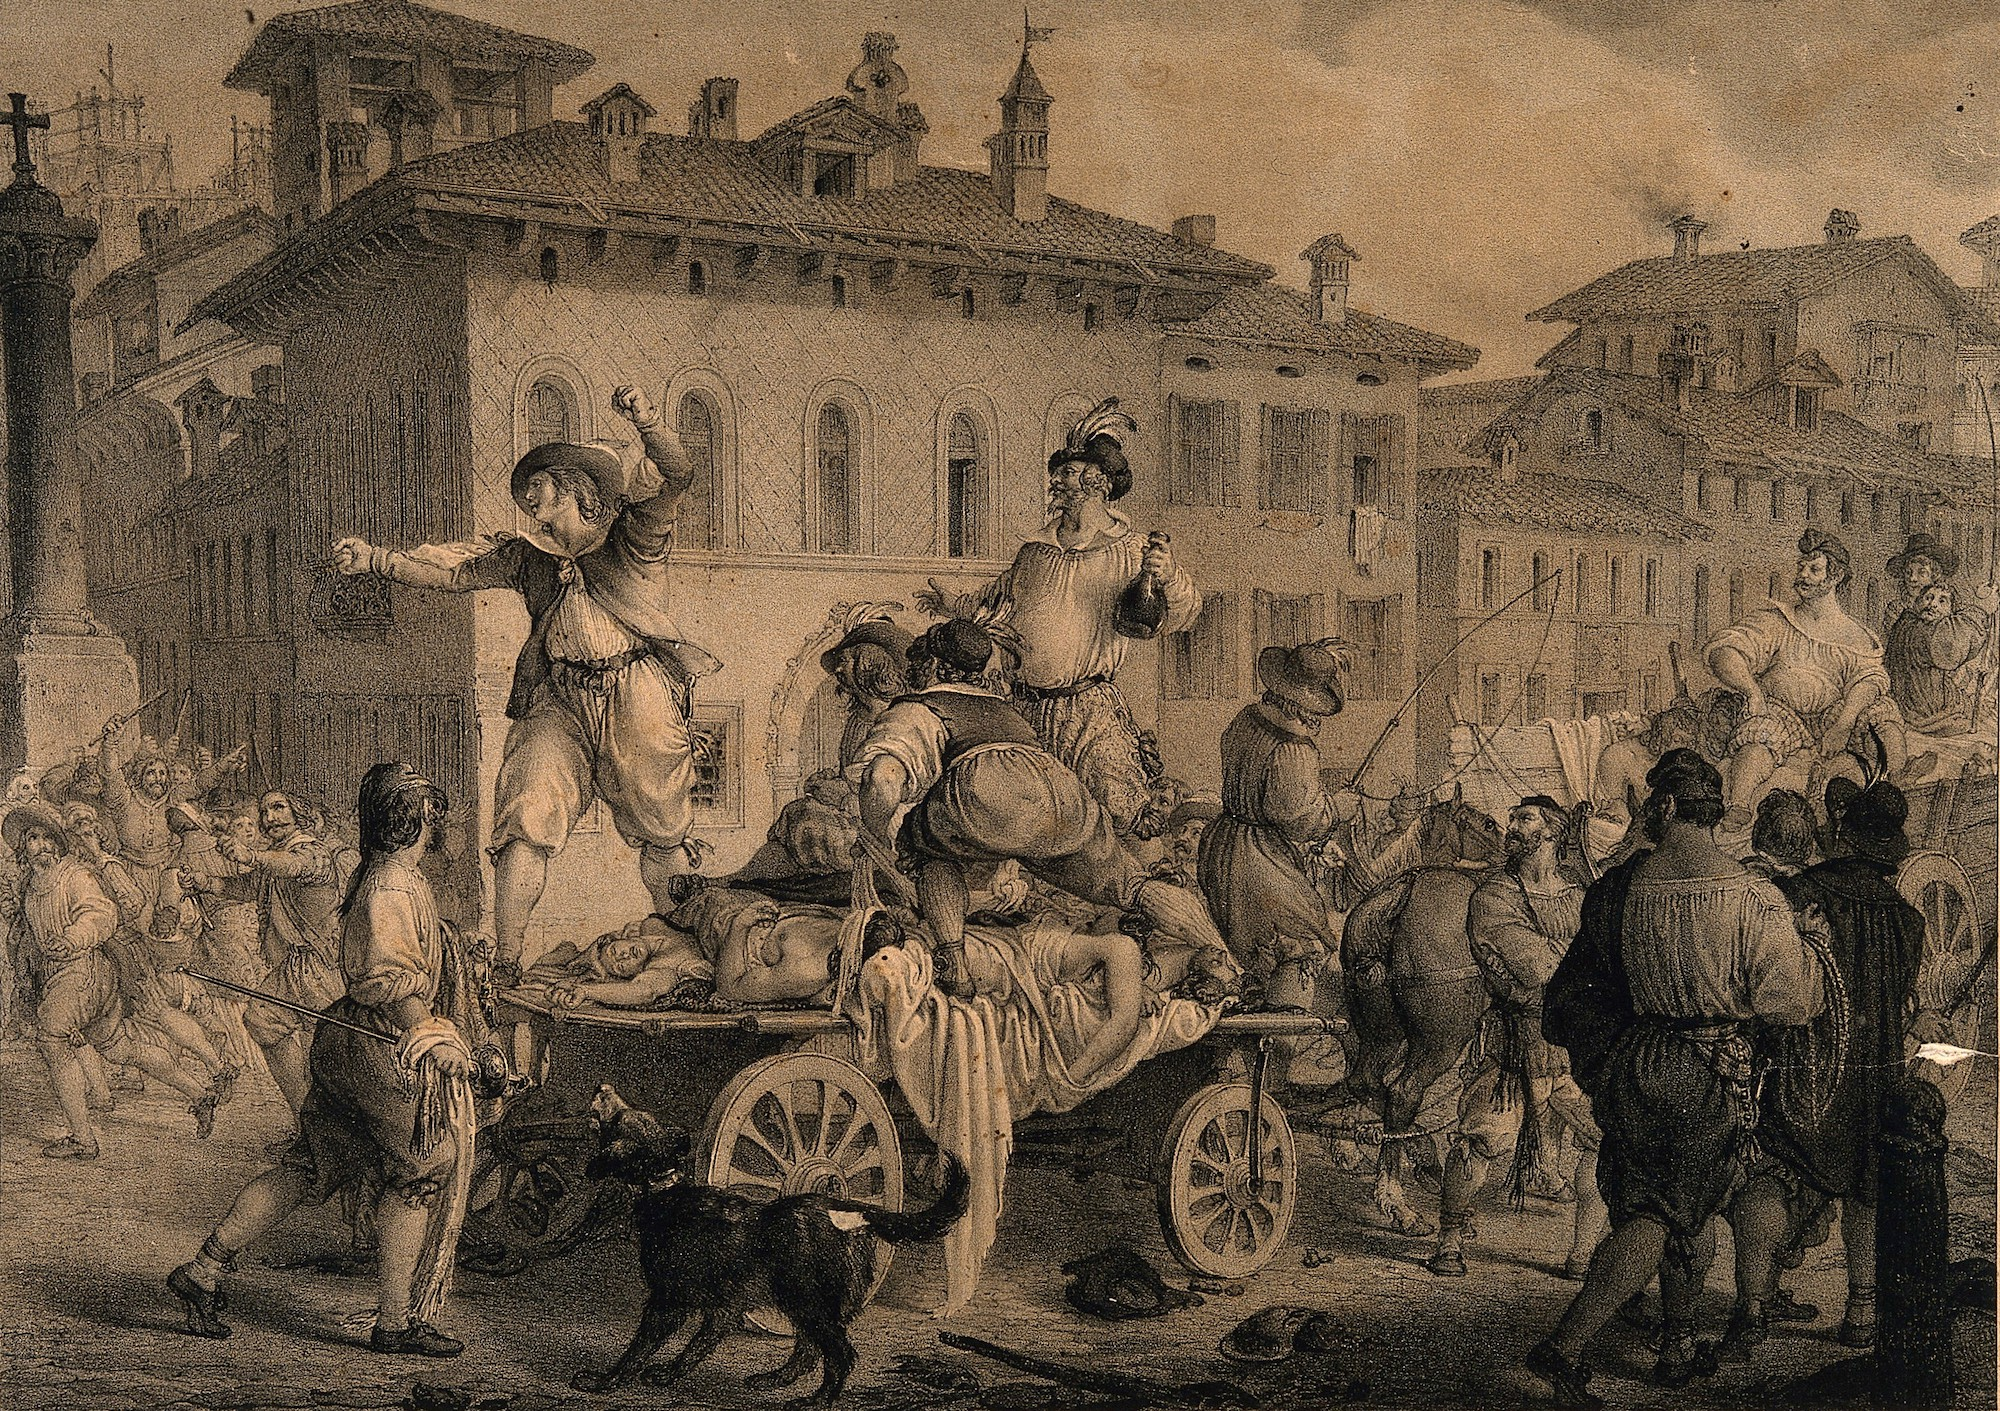 A lithograph showing a scene from Manzoni's novel The Betrothed where people in Milan accuse others of spreading disease.